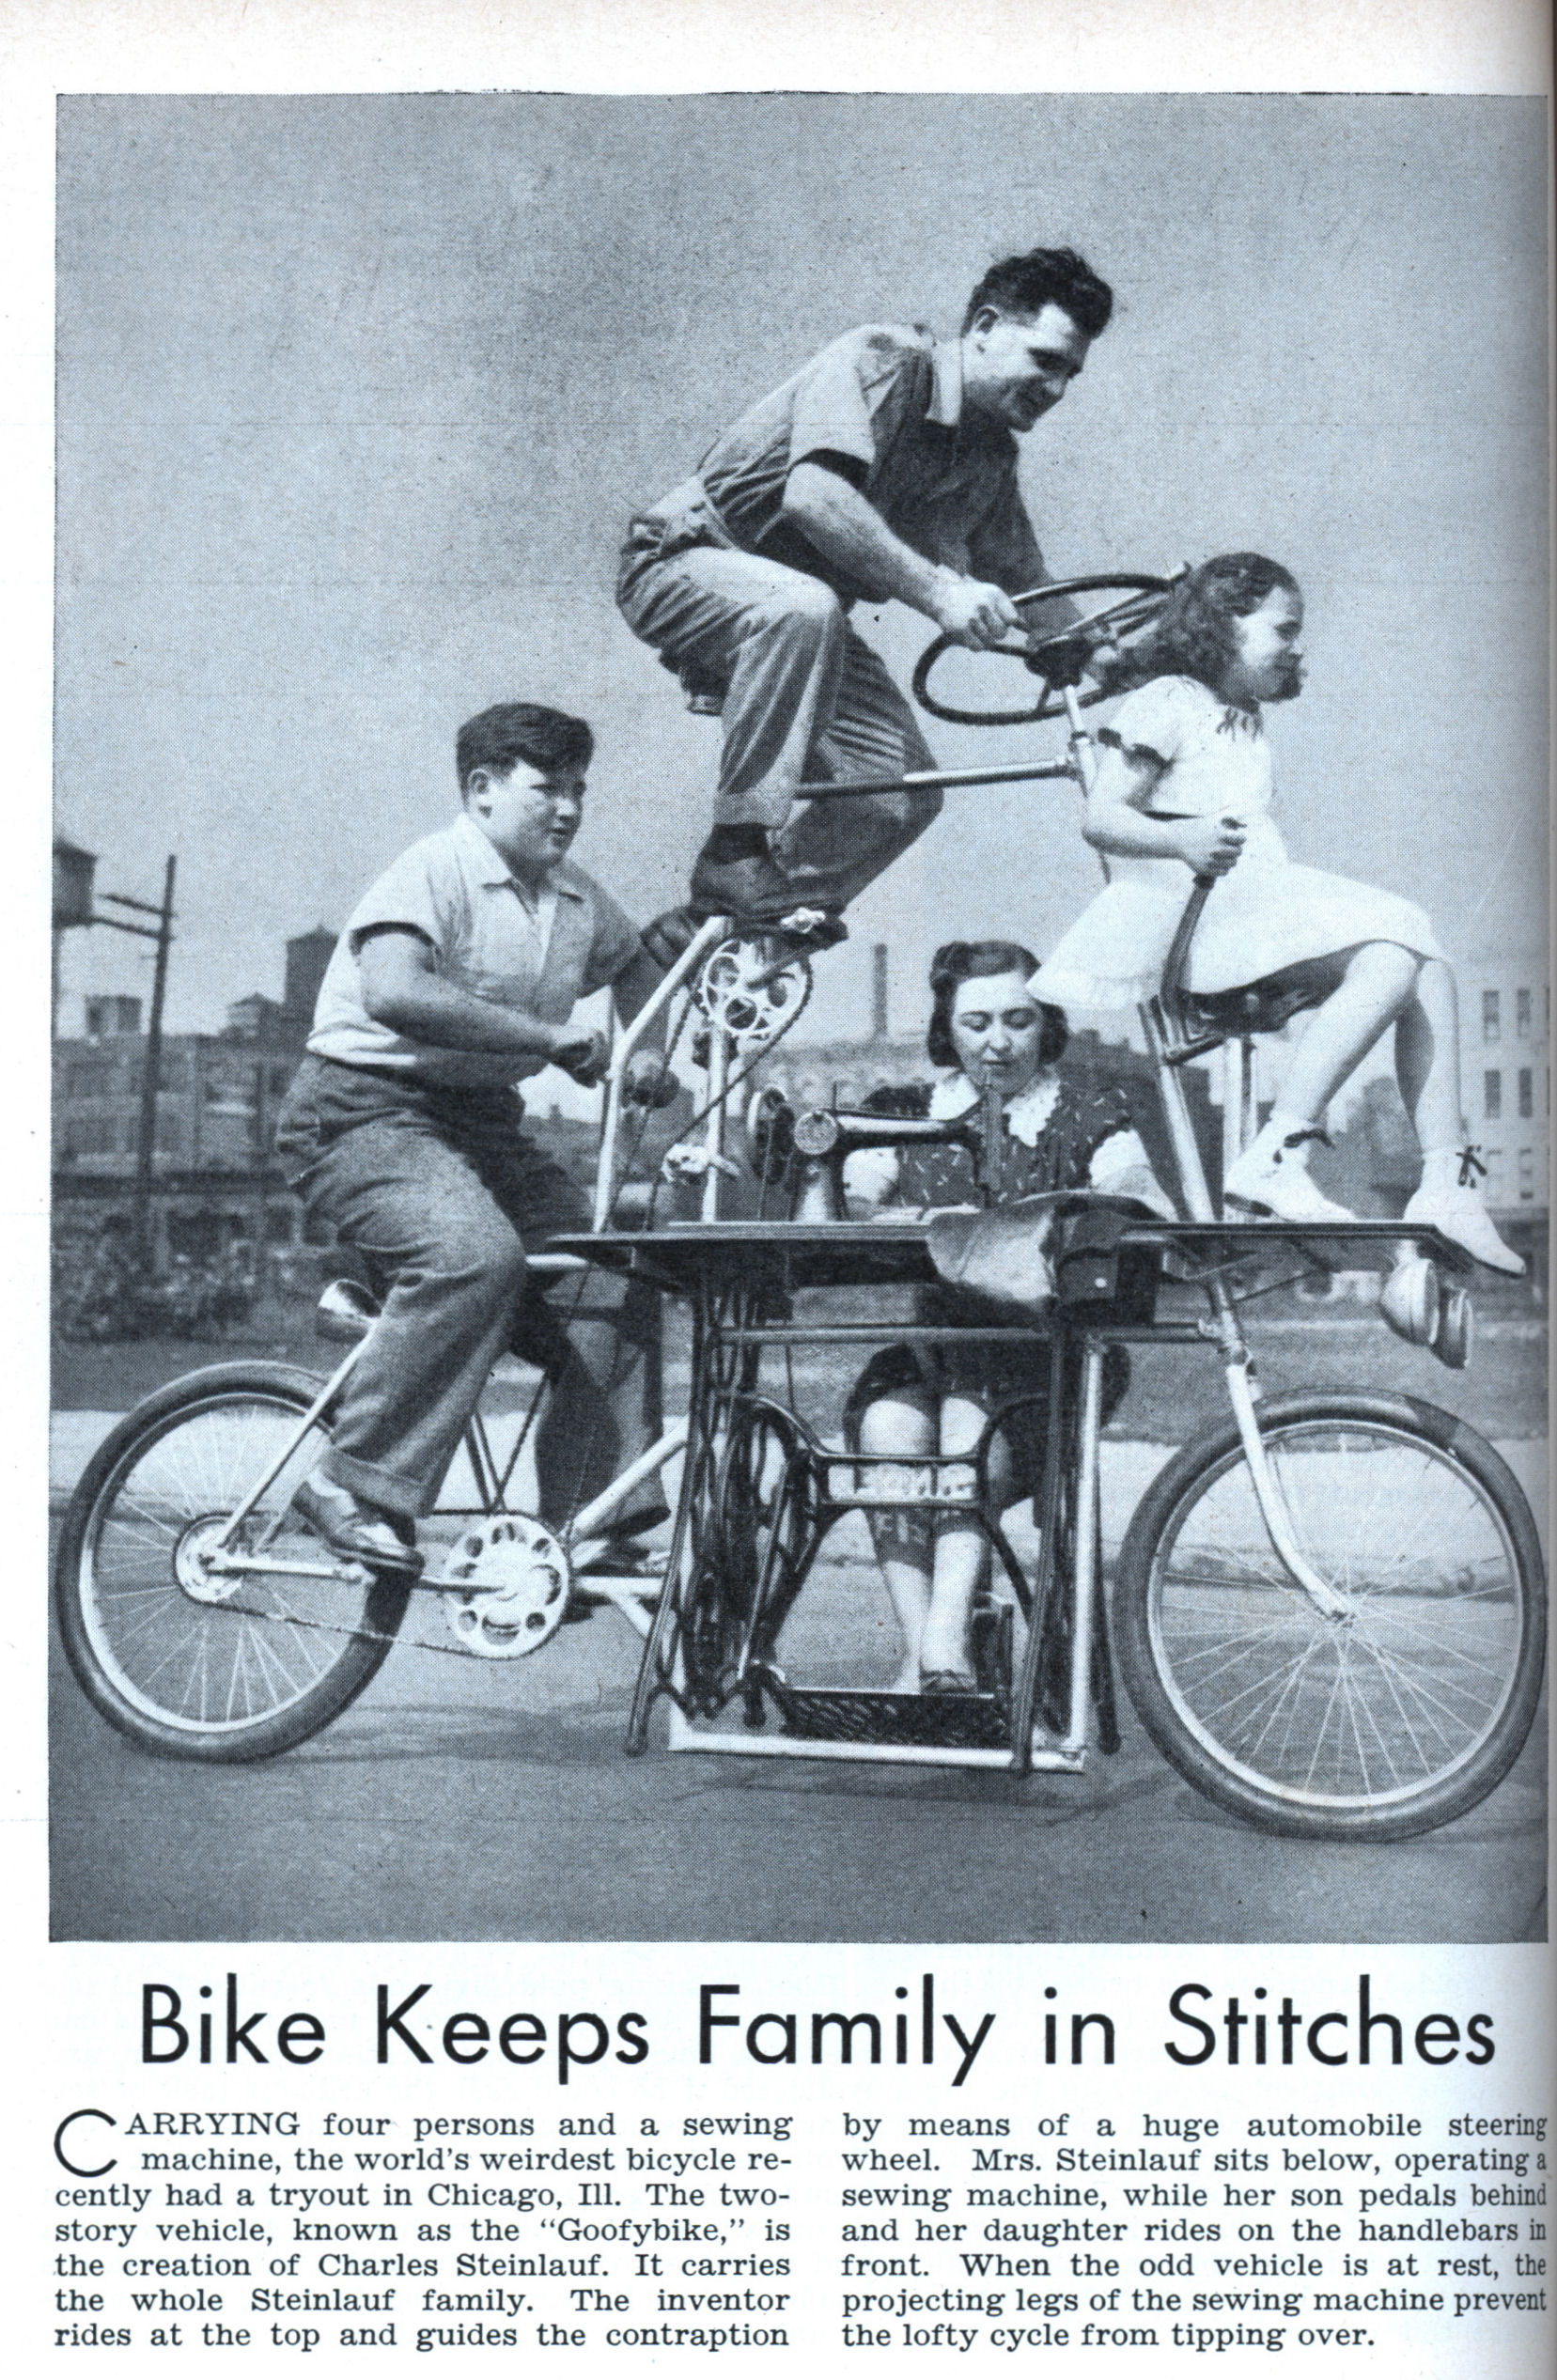 http://blog.modernmechanix.com/mags/PopularScience/10-1939/sewing_bike.jpg